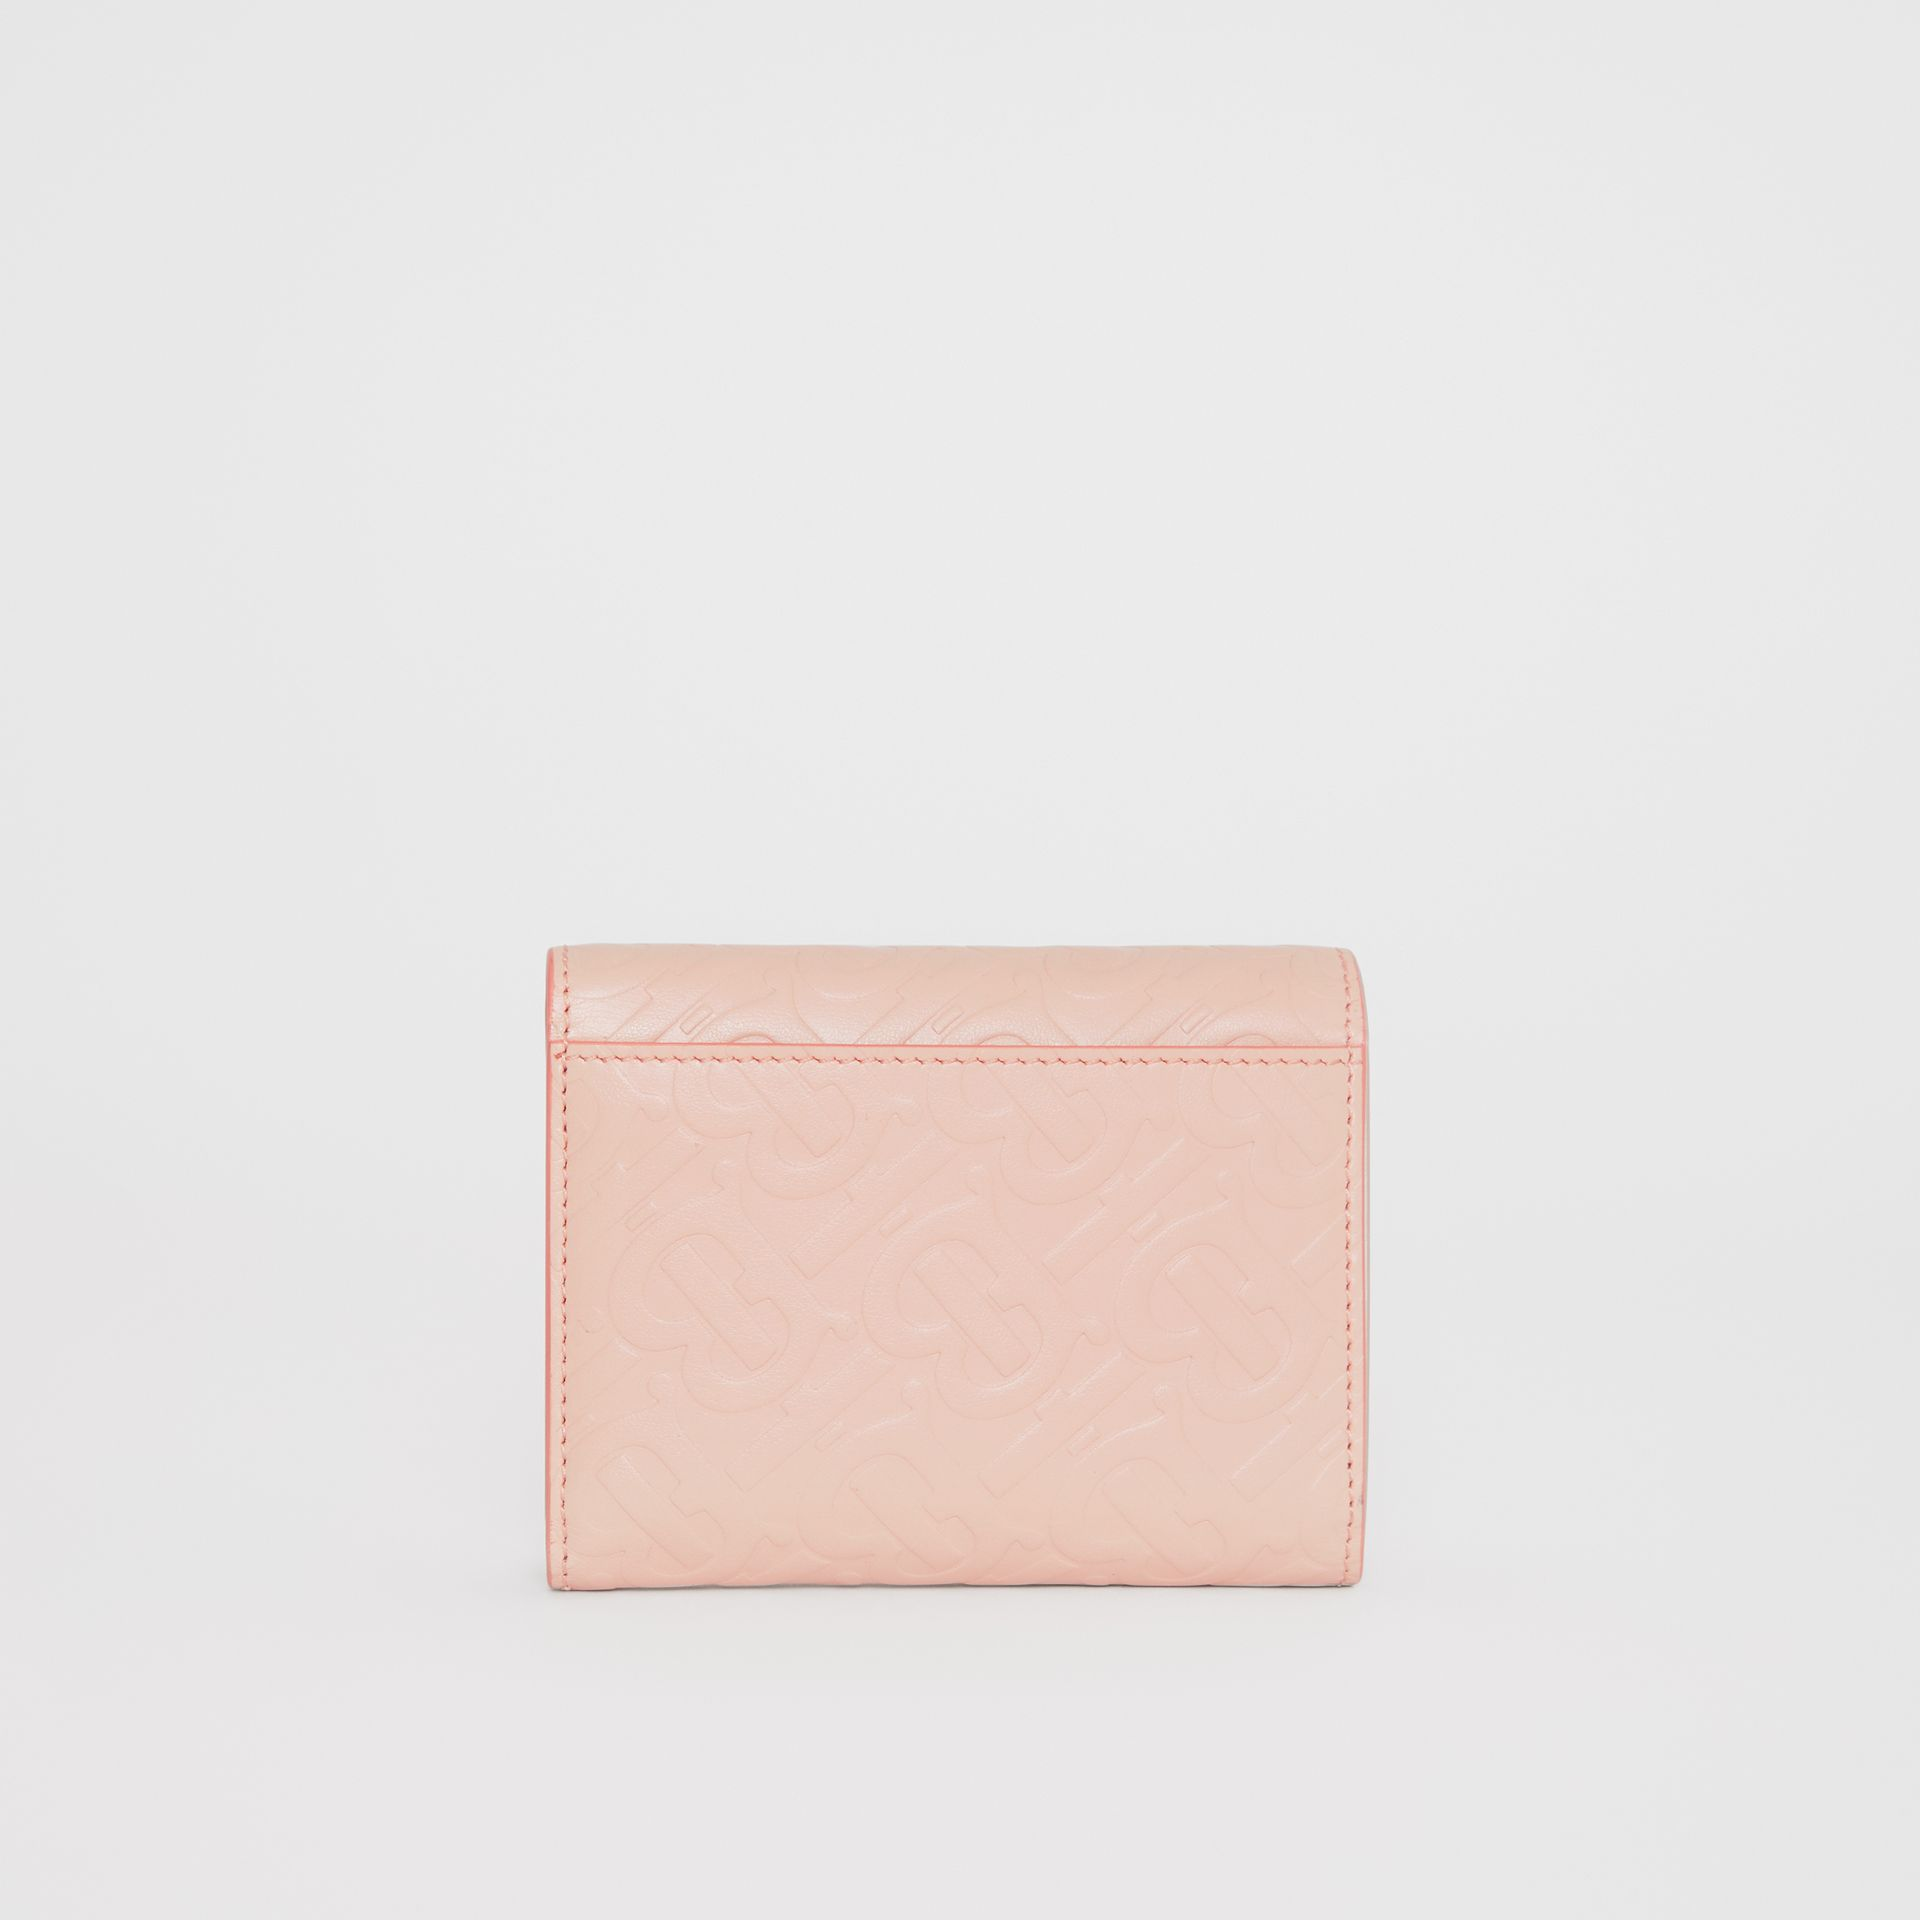 Small Monogram Leather Folding Wallet in Rose Beige | Burberry United States - gallery image 4